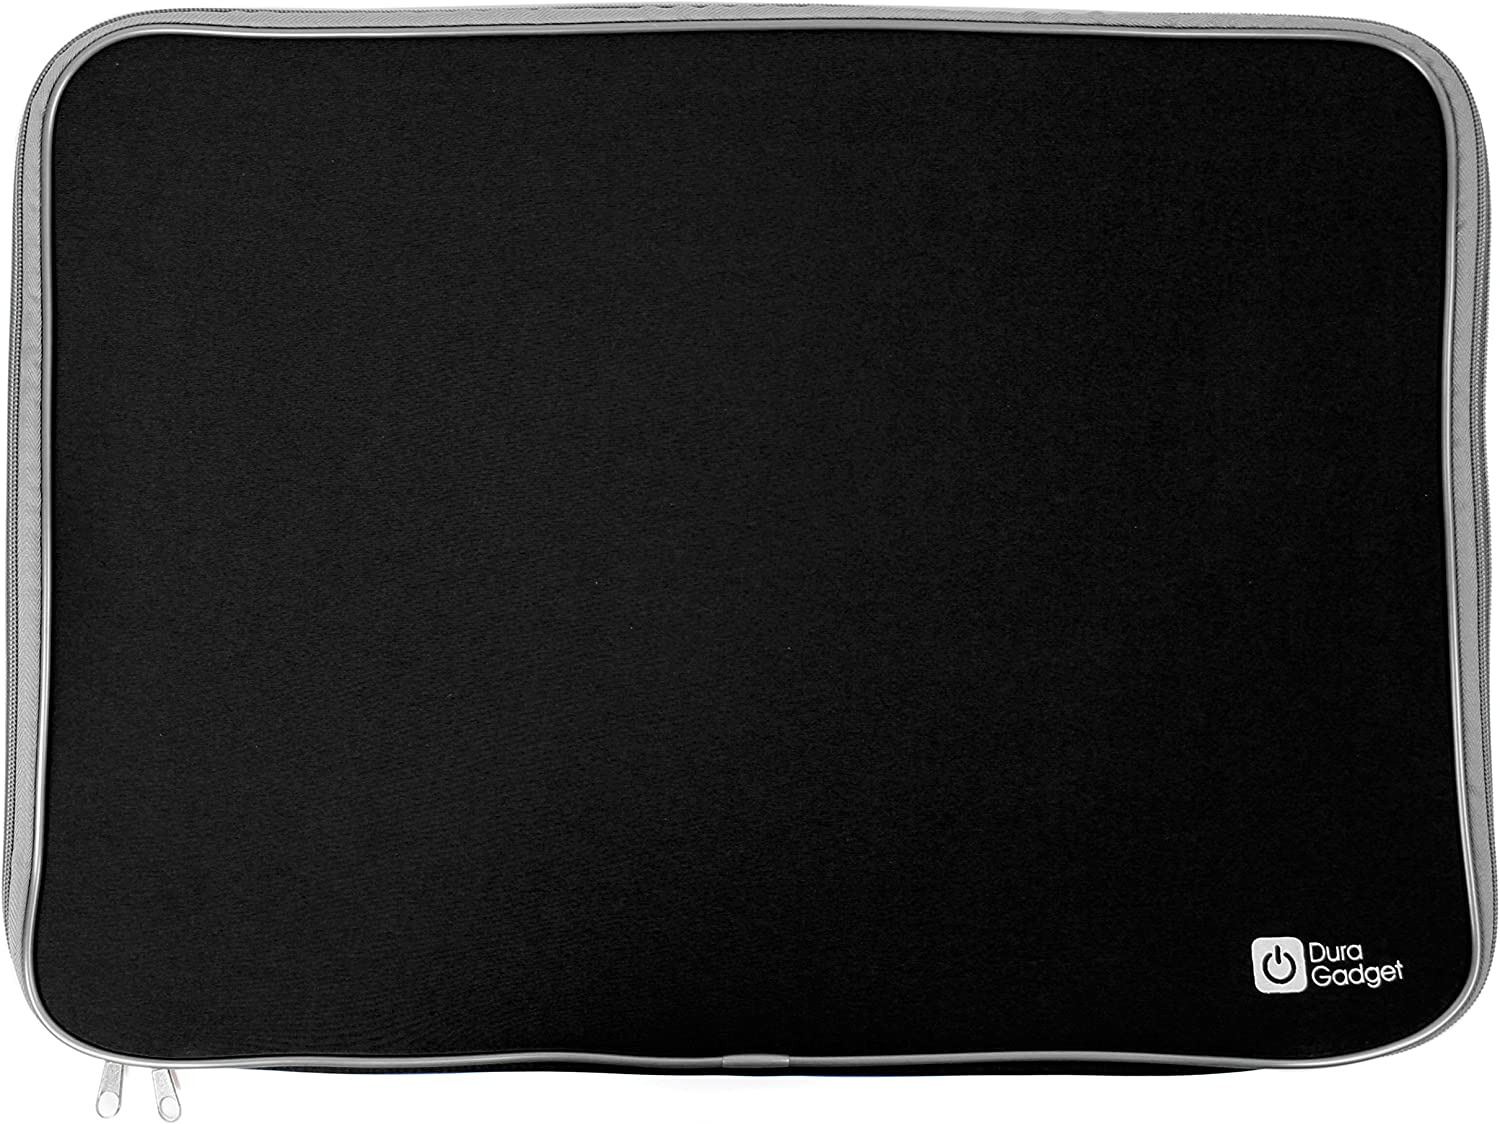 "Black 18"" Water-Resistant Padded Laptop Sleeve - for Acer Aspire V Nitro VN7-791G - by DURAGADGET"